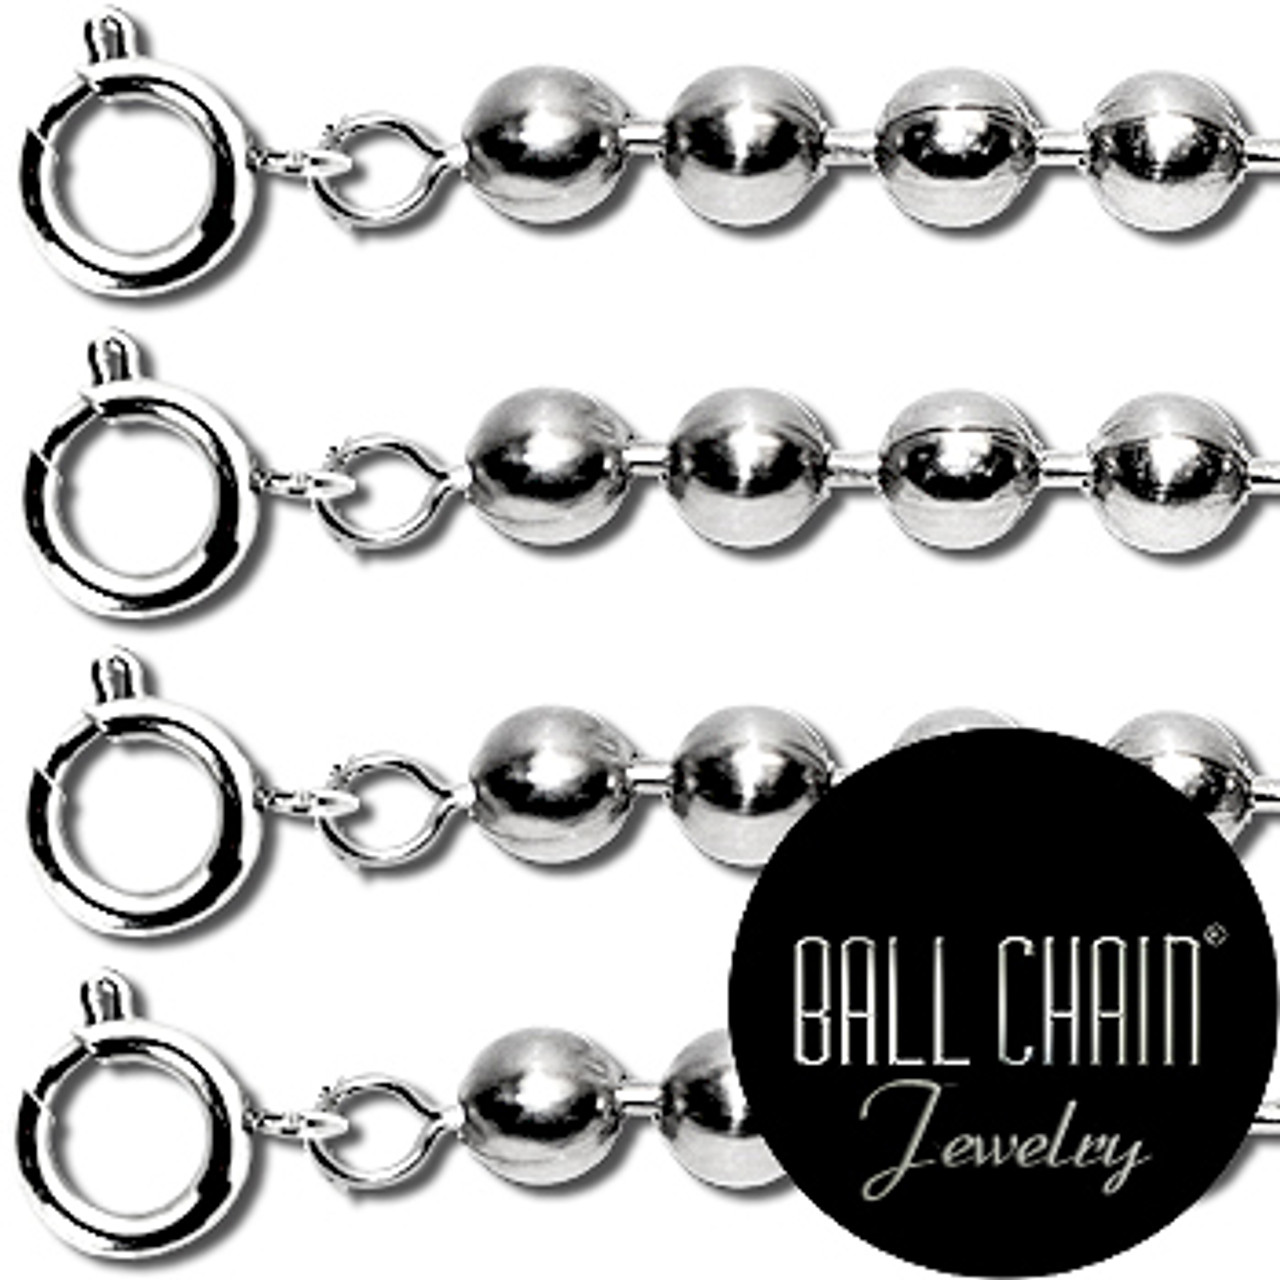 2.1mm Sterling Silver Ball Chains with Spring Ring - 24 Inch Length